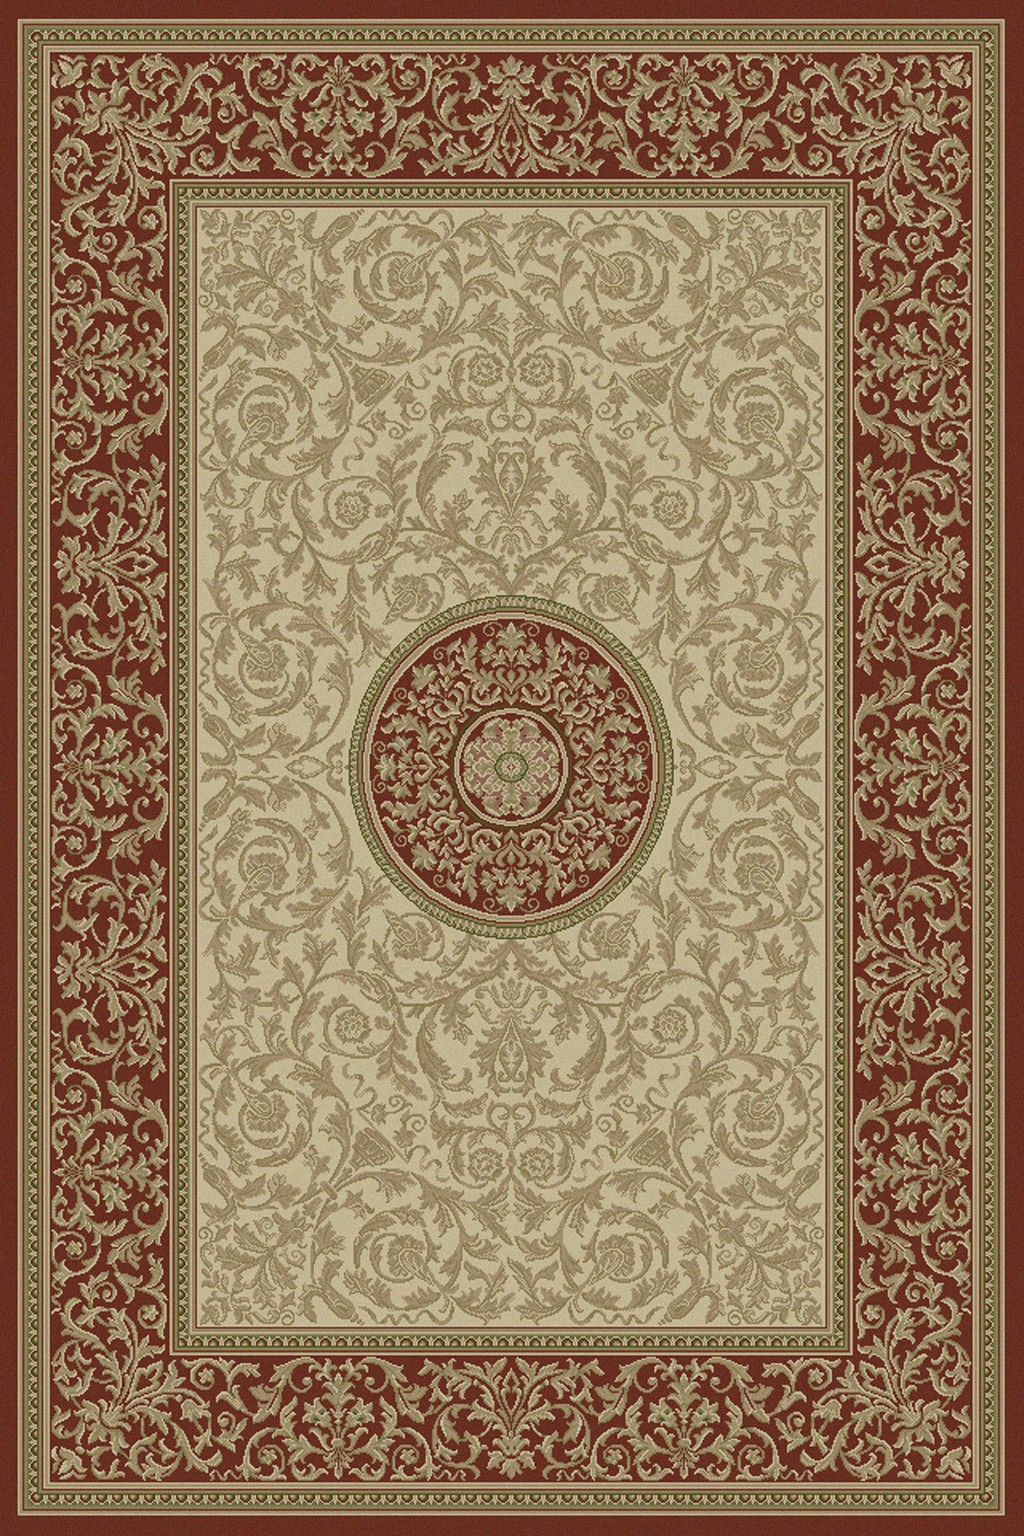 closeout area rugs news, area modern rug news, square contemporary area rug, area rug wholesaler